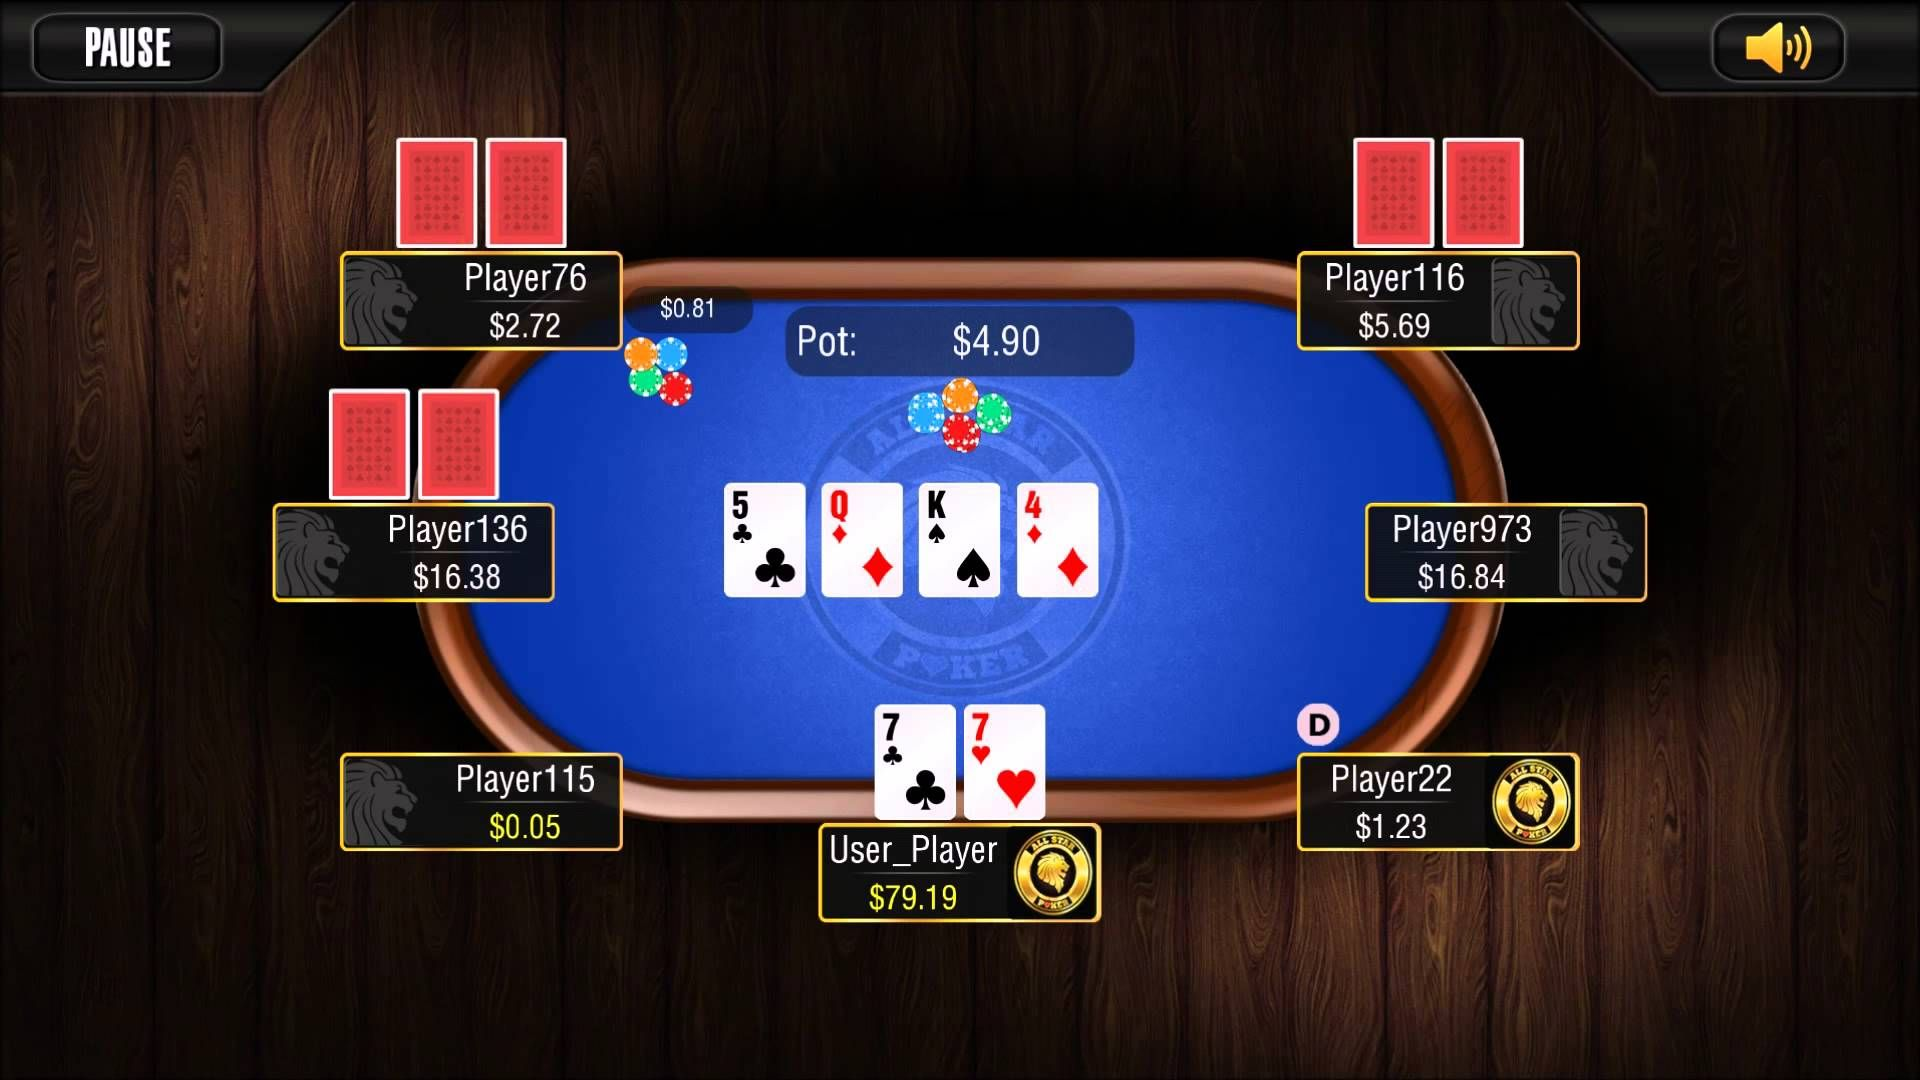 Painful Fold Cash Game (All Star Poker App) www